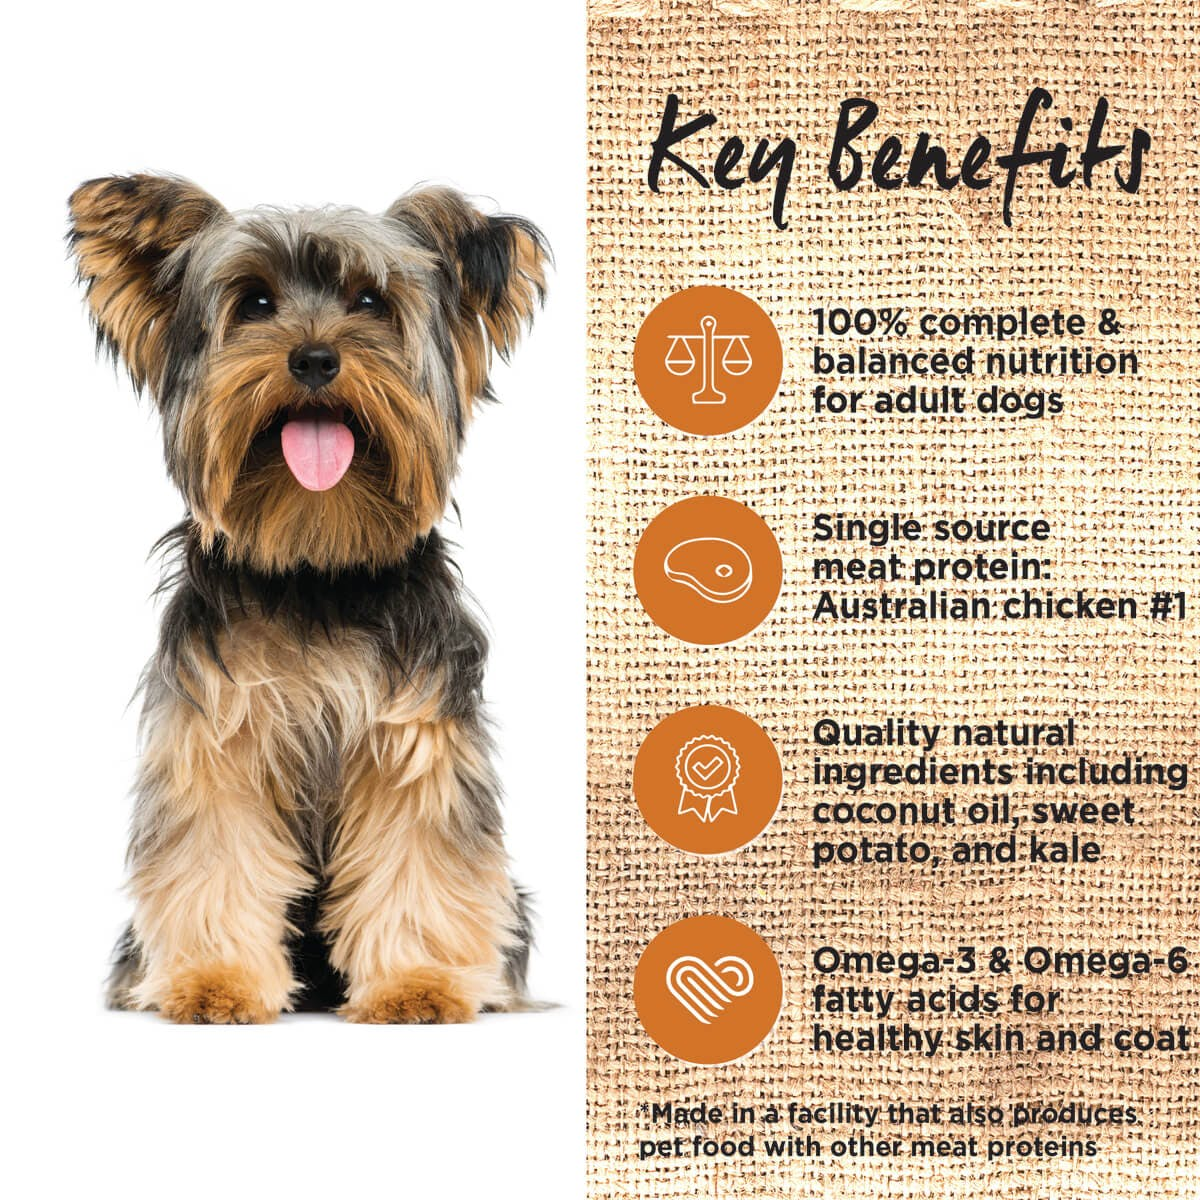 Ivory Coat | Dry GF Chicken with Coconut Oil 2kg | Grain Free Dry Dog Food | Left of pack